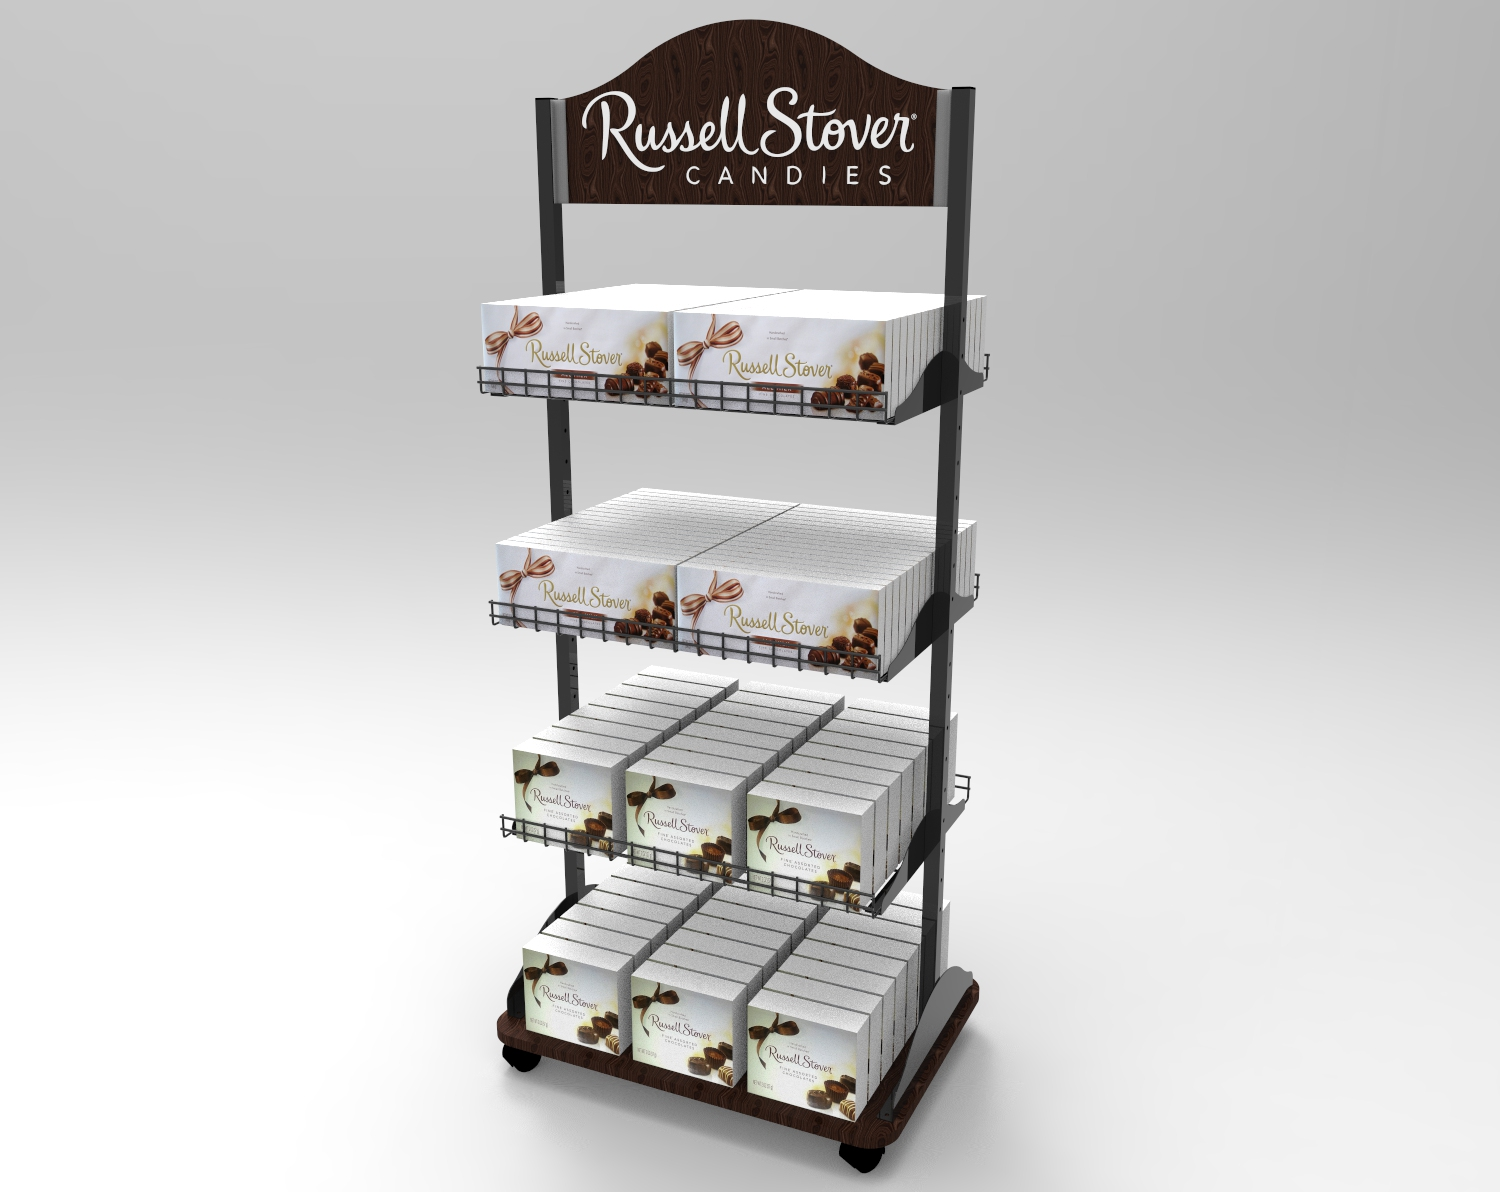 2-Sided Candy Display - Floor display that is shopped from both sides